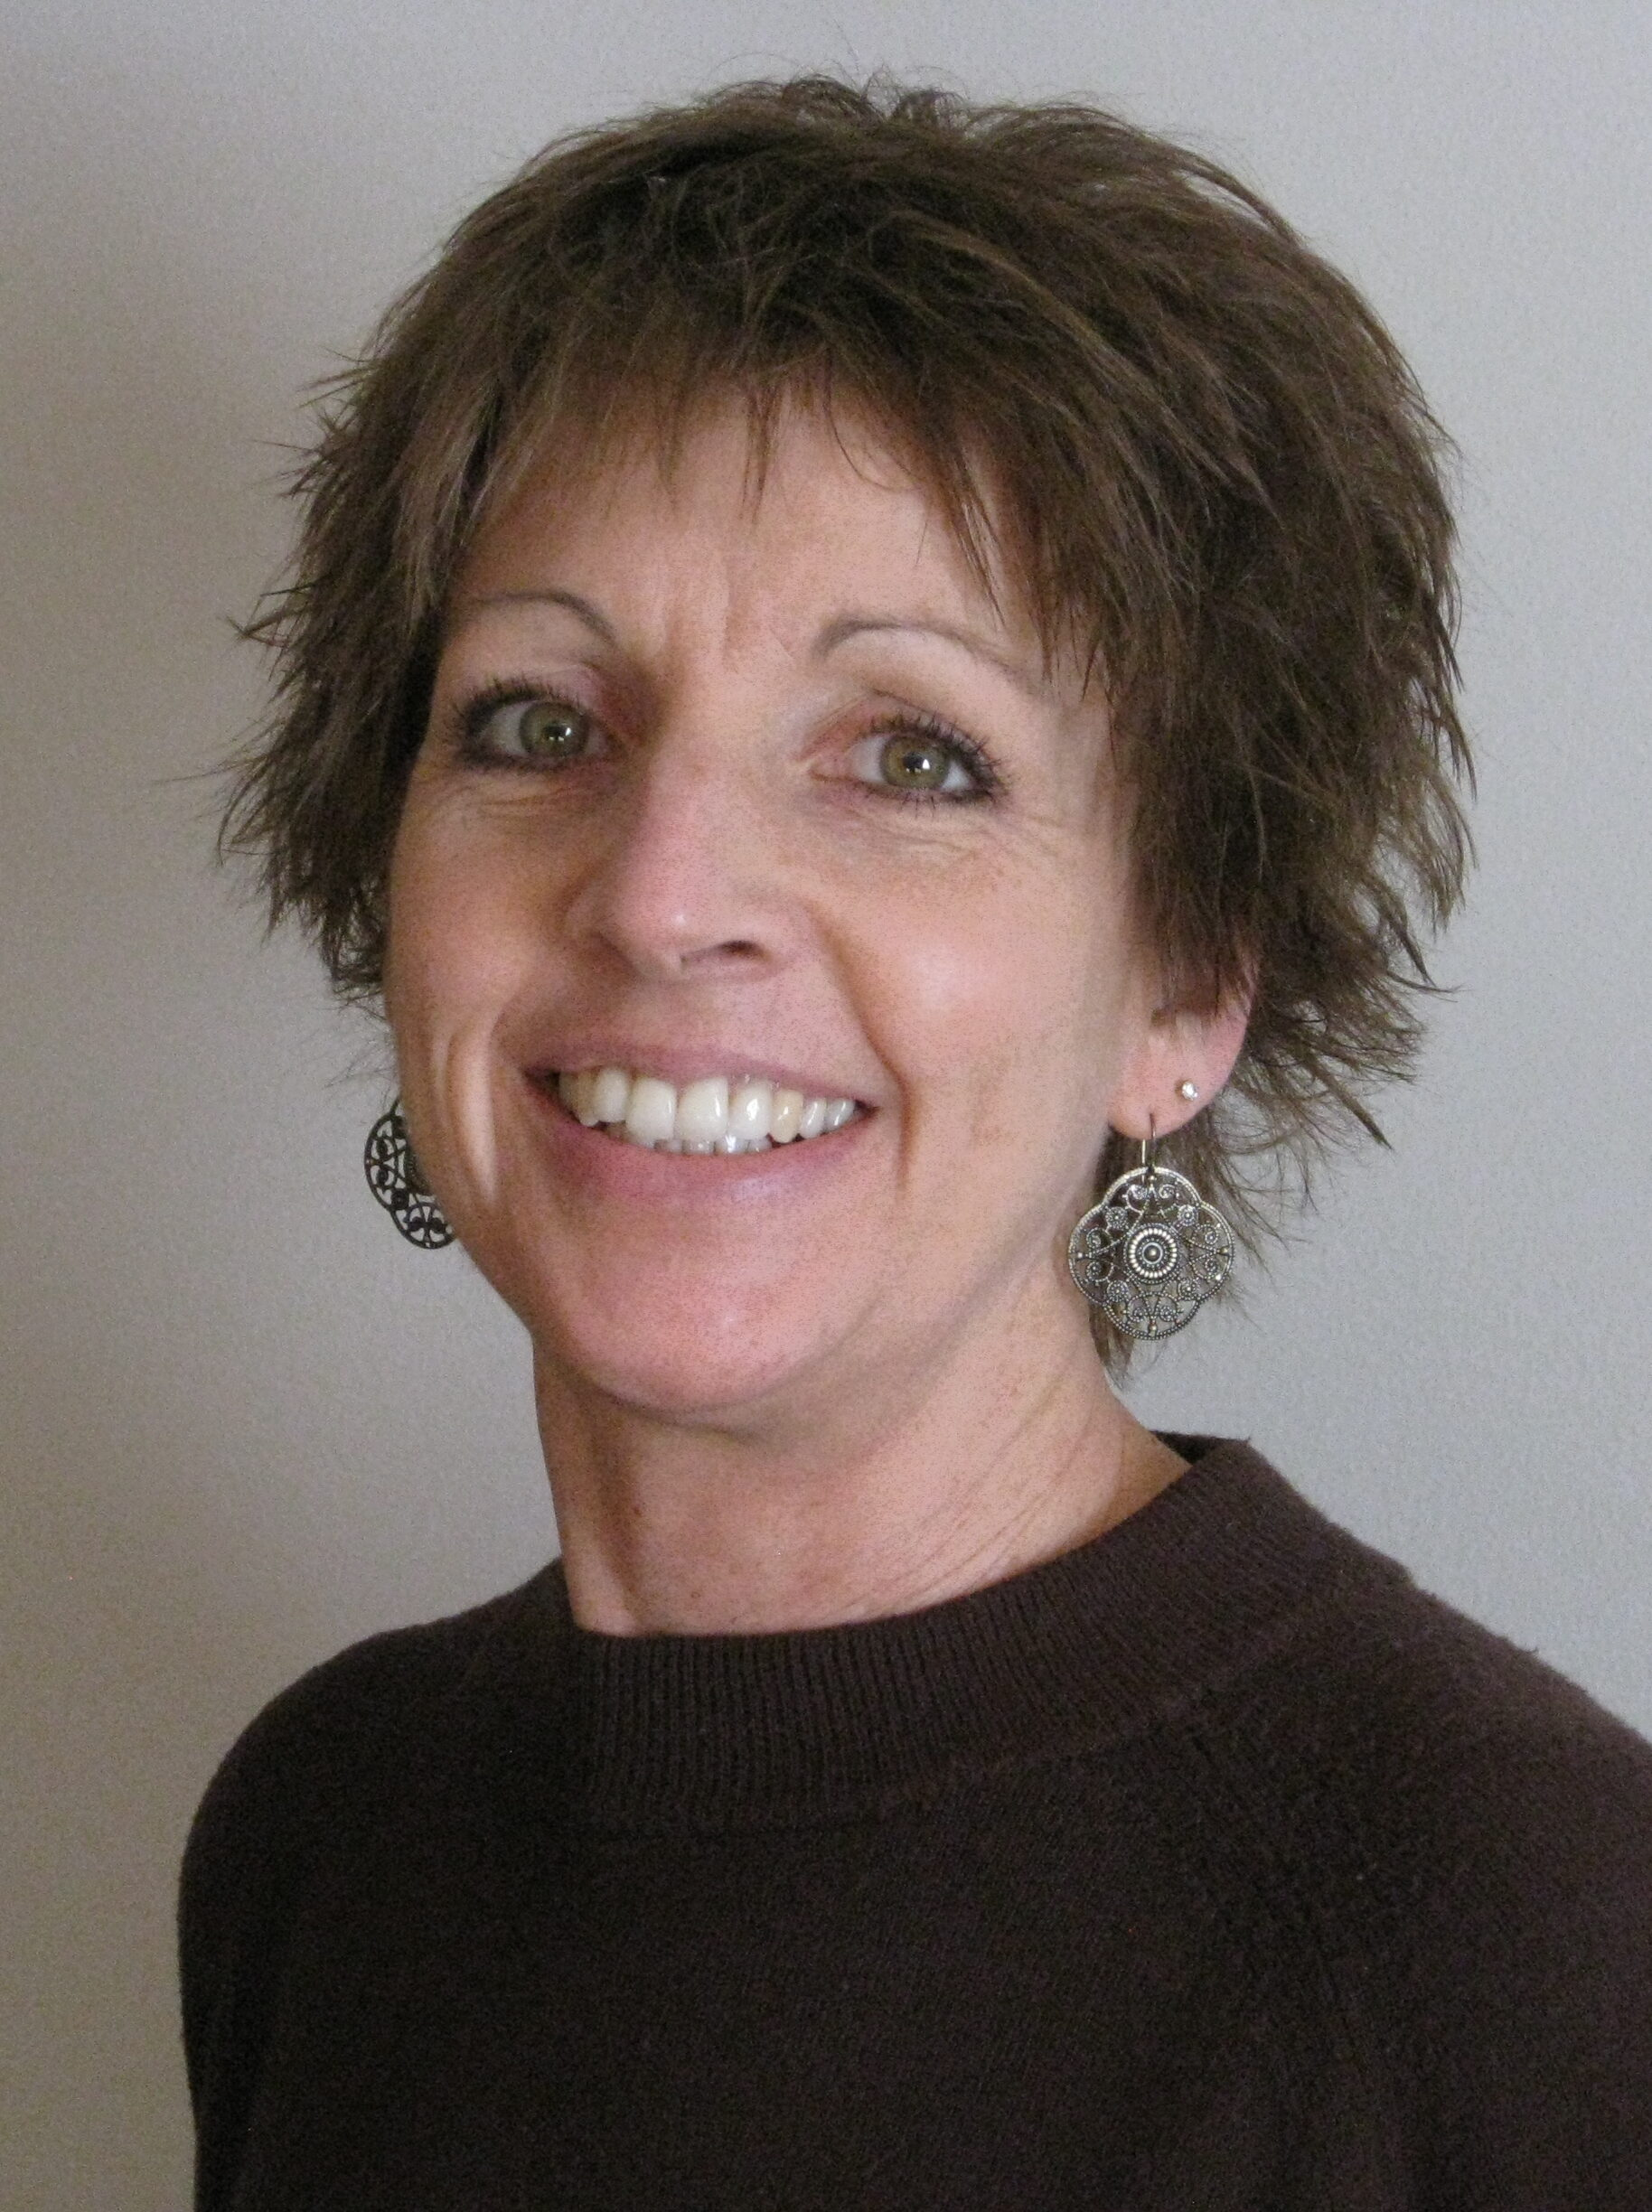 Staff image of KATHY JO BISSEN